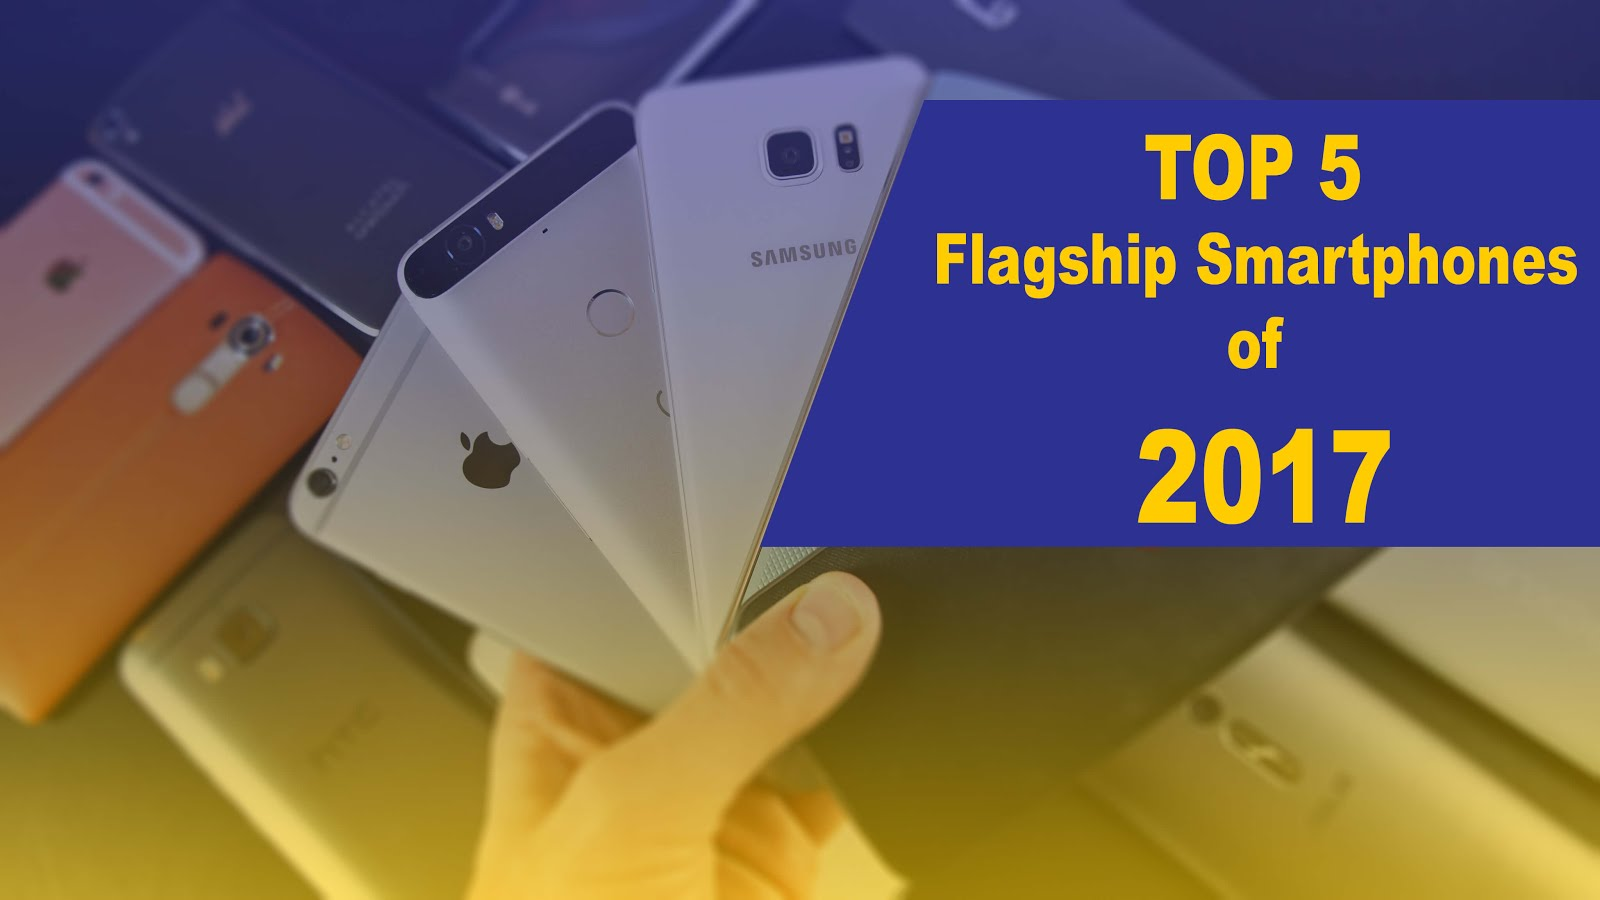 Top 5 Flagship Smartphones That Rock The Market In 2017